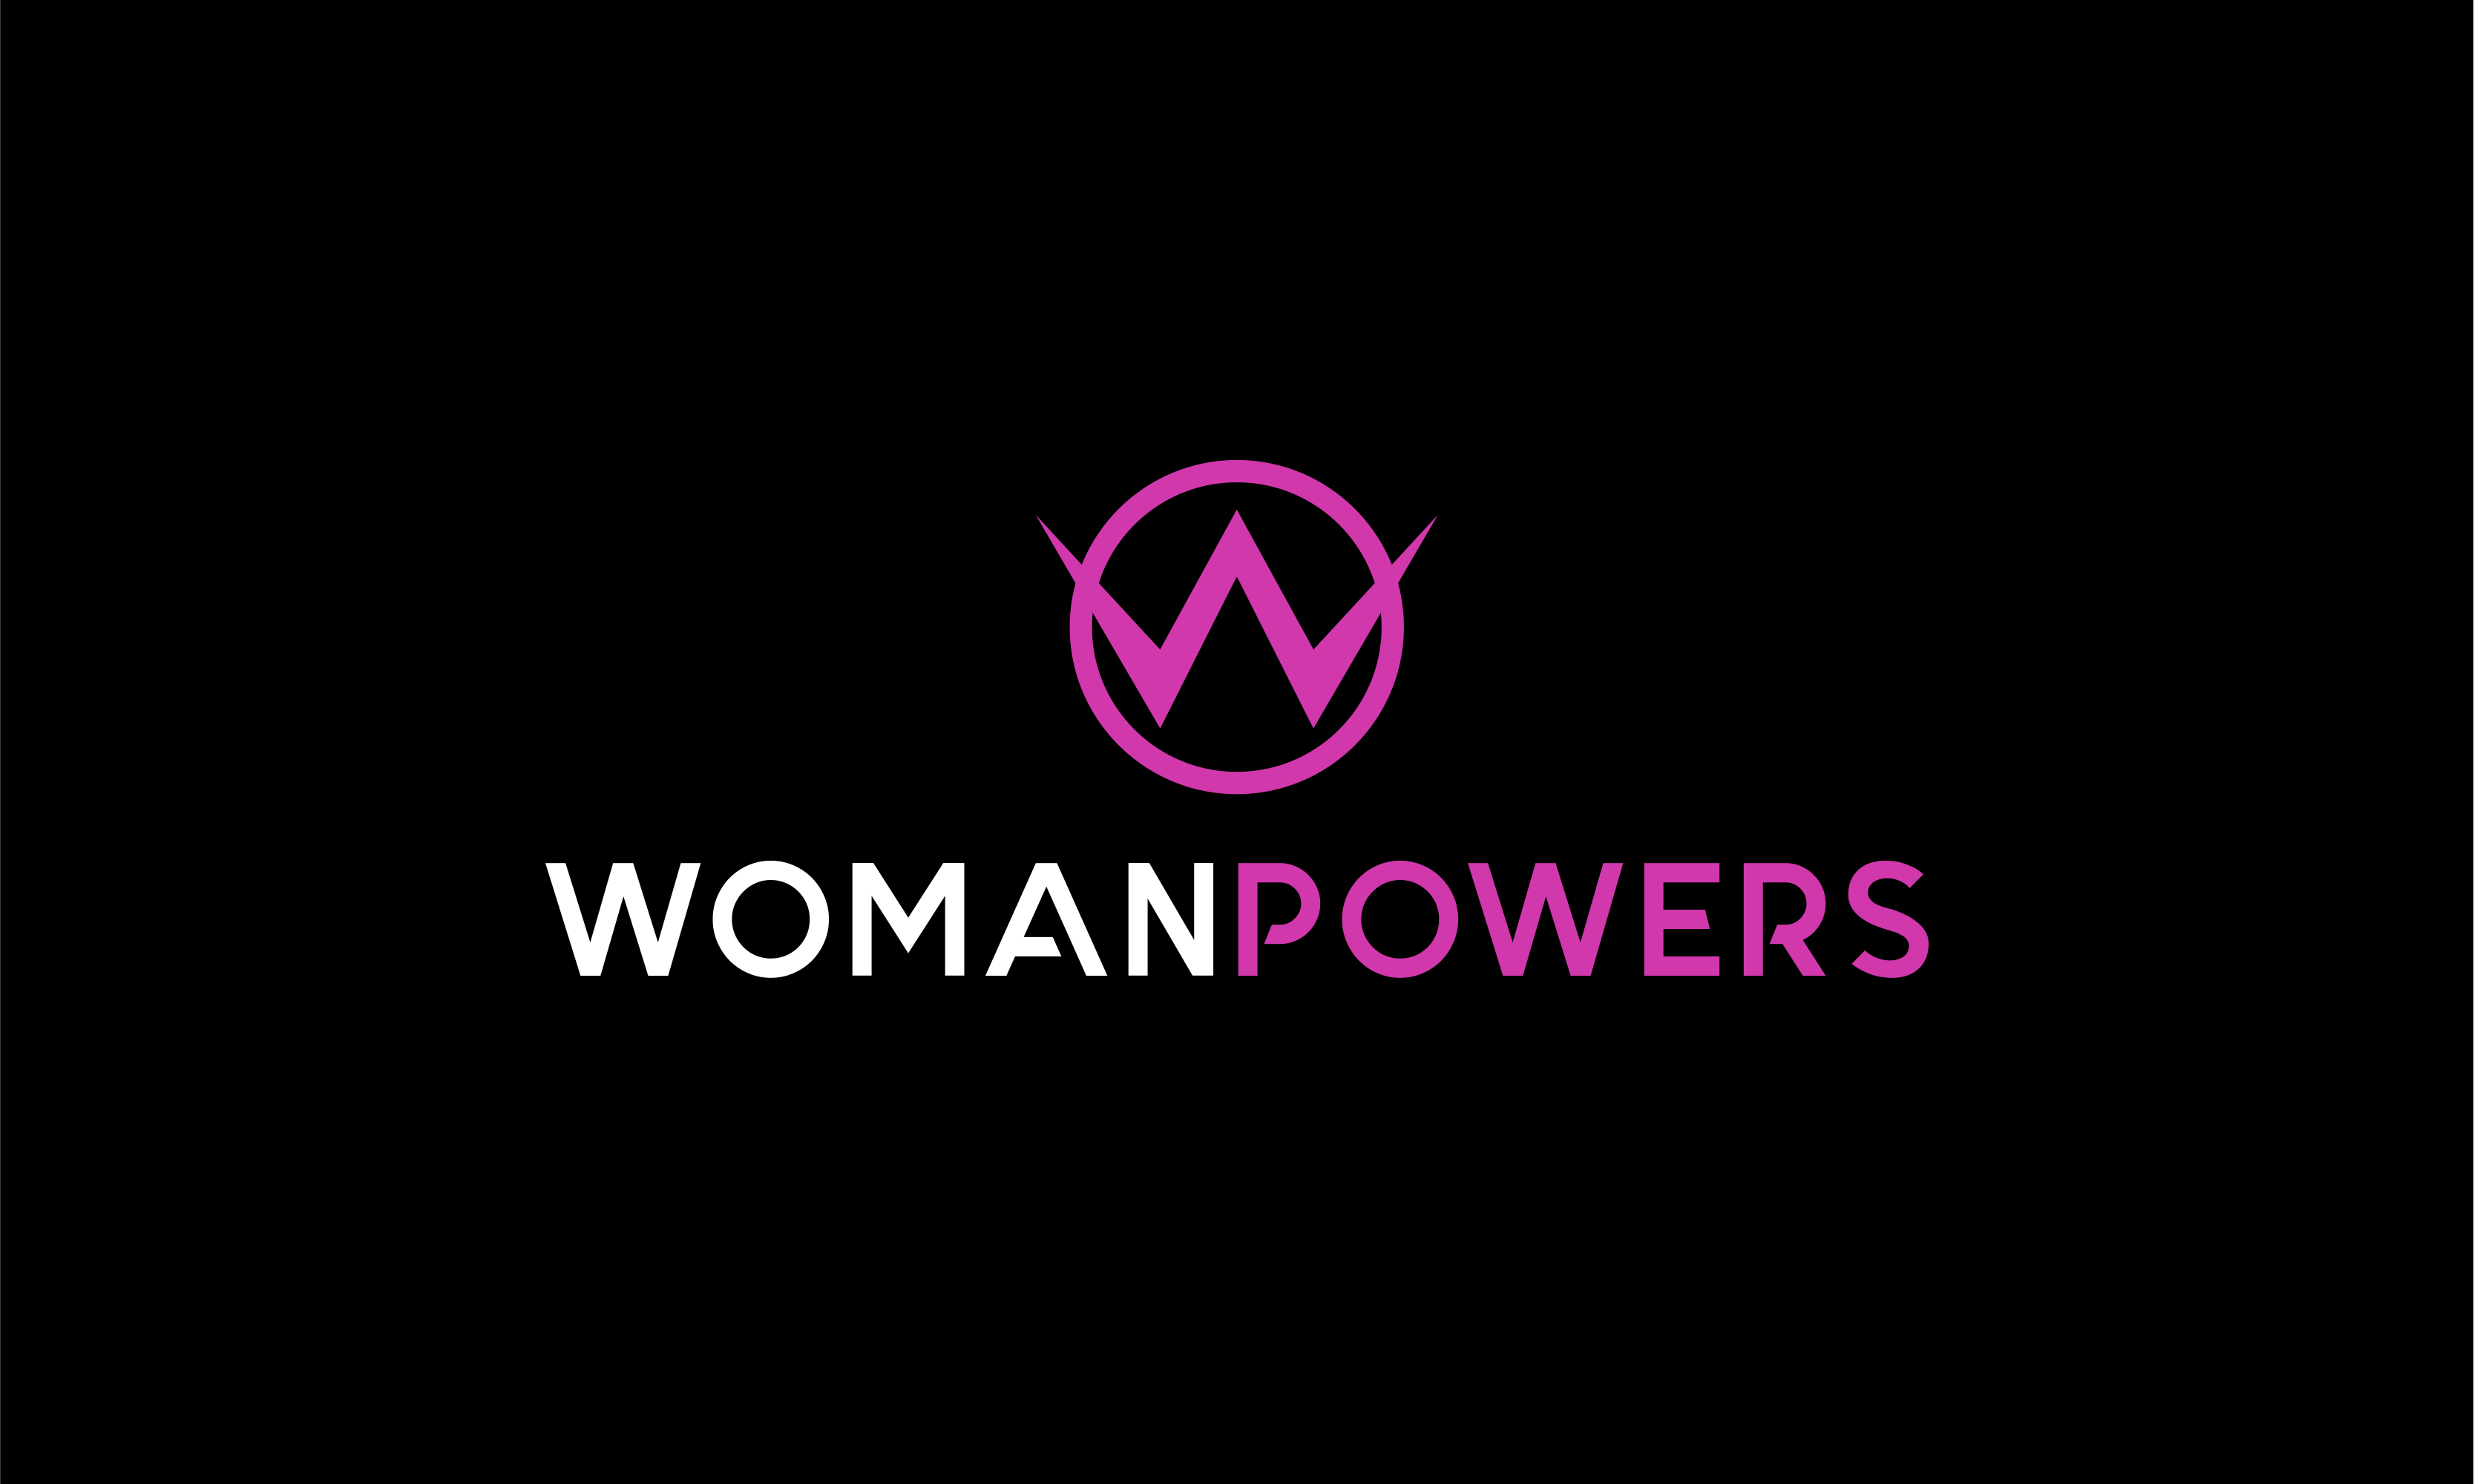 WomanPowers logo